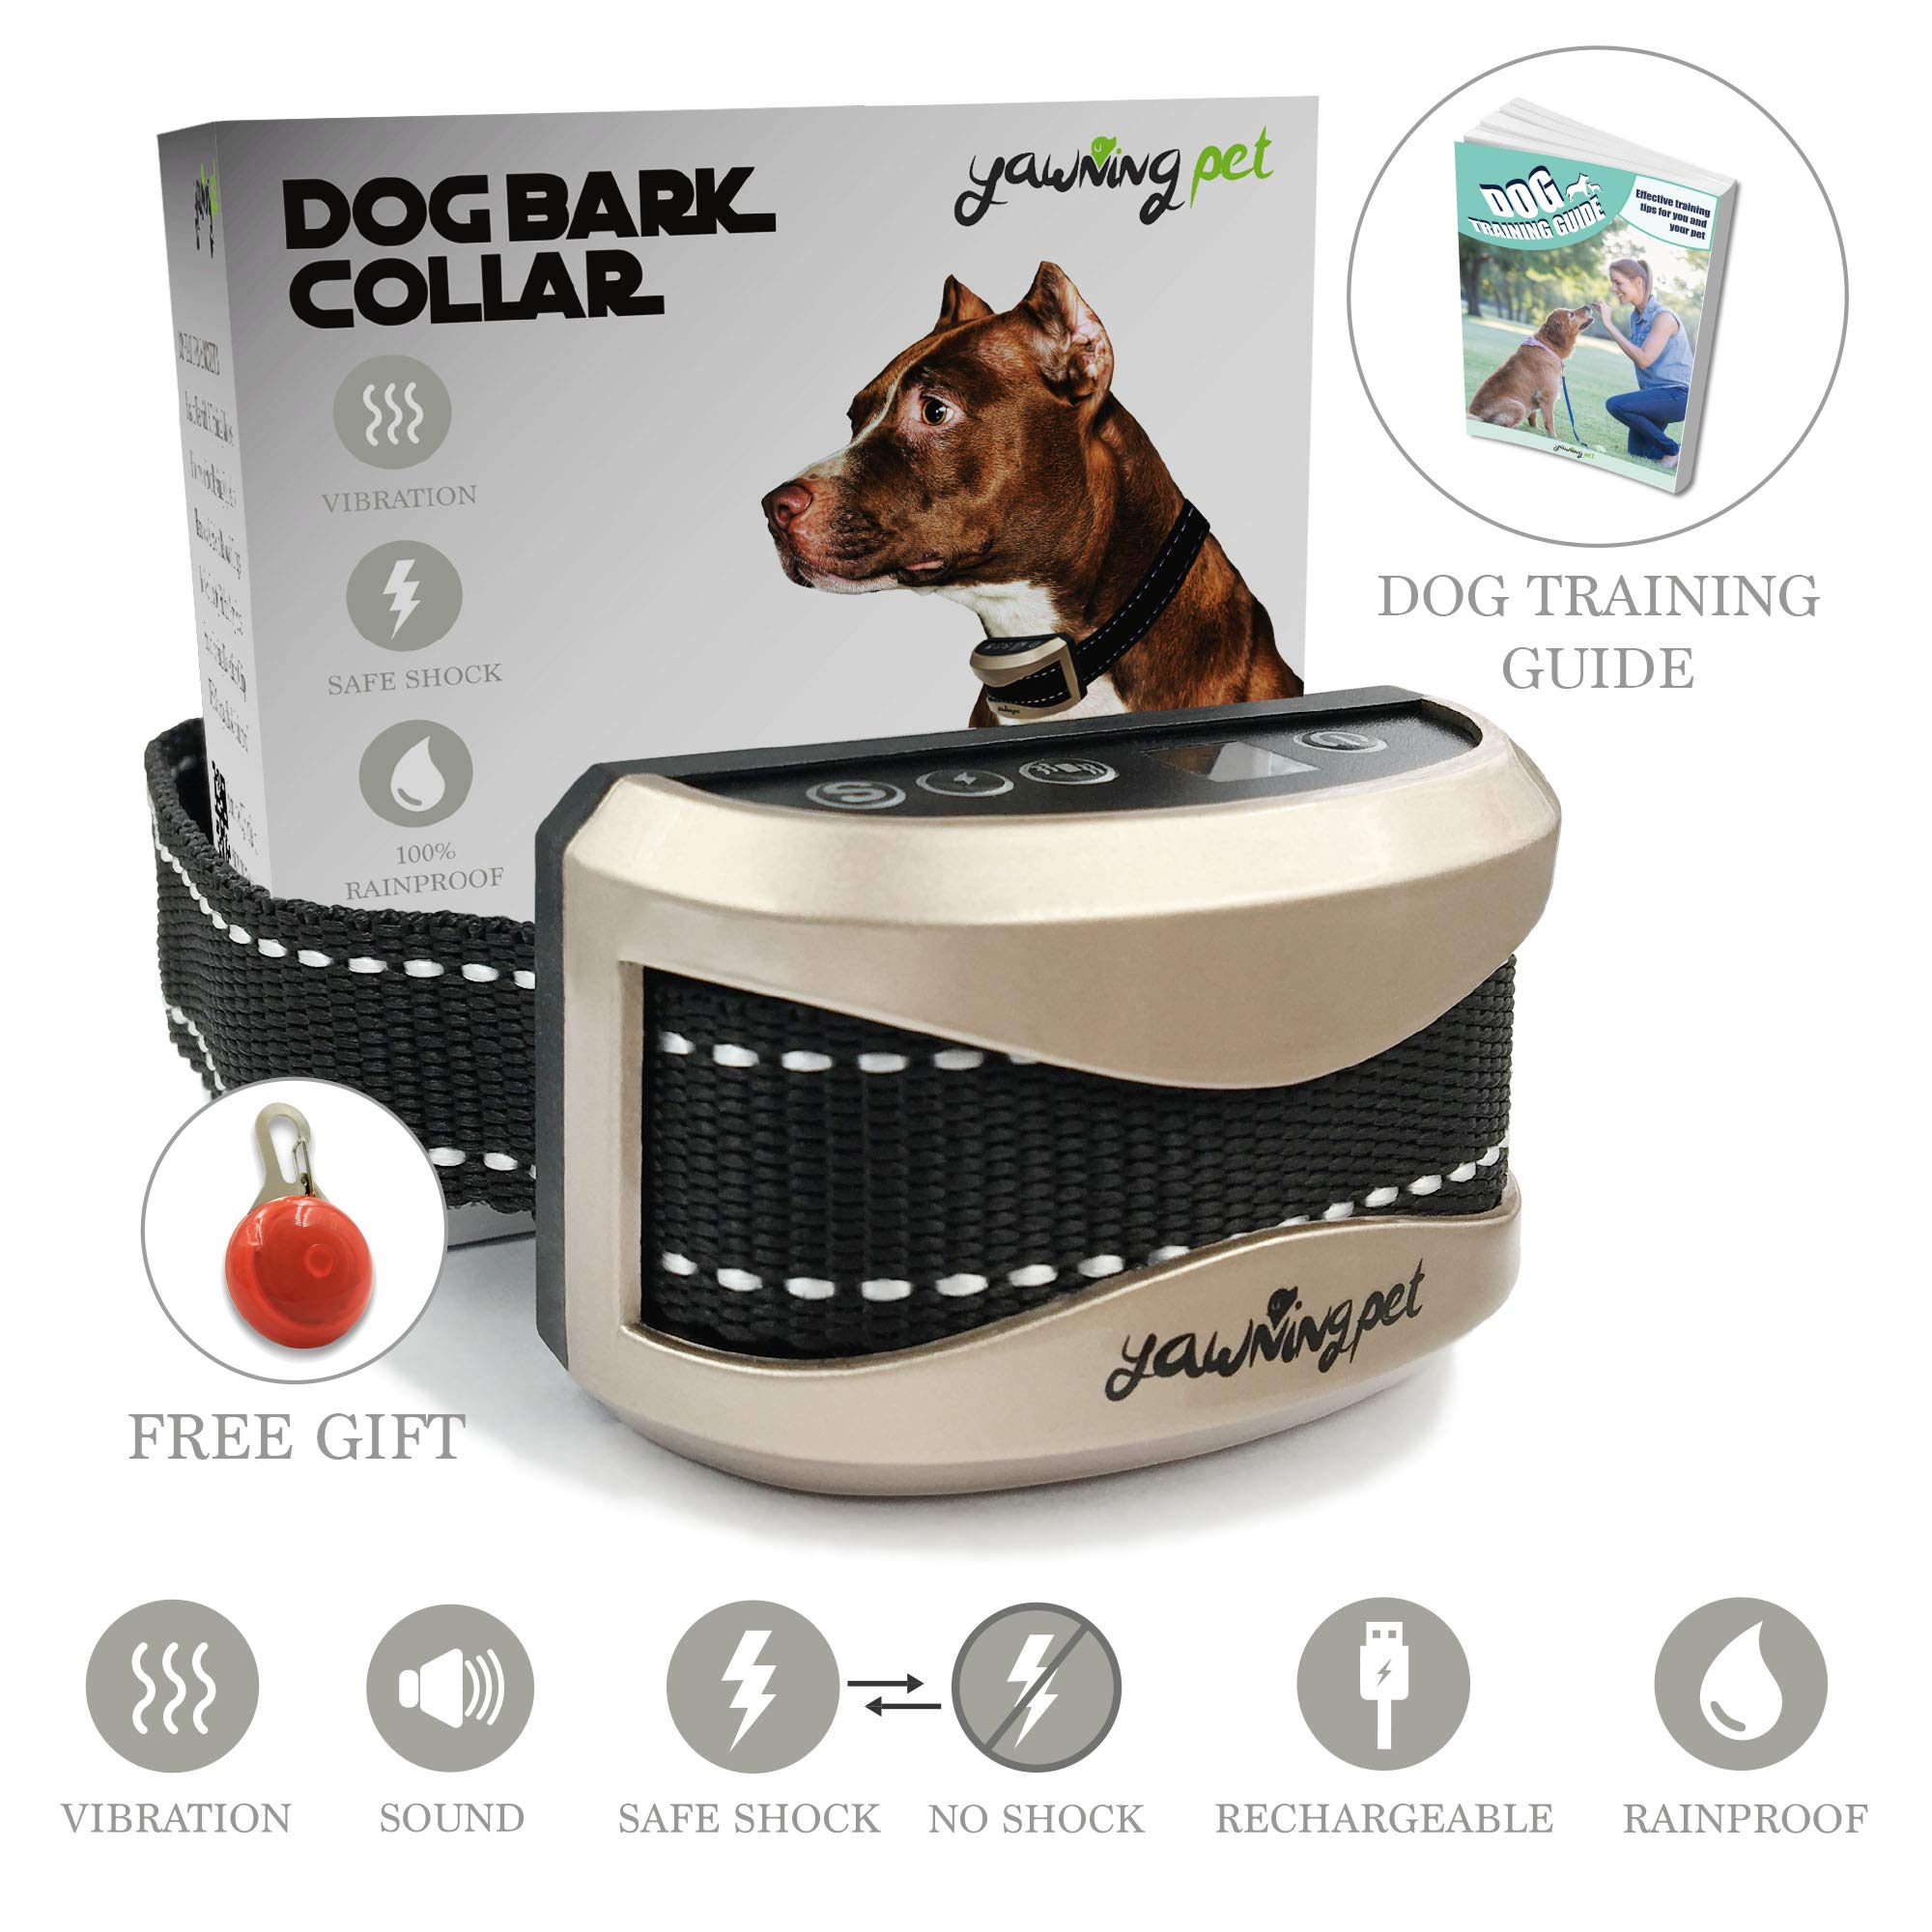 No Bark Shock Collar Anti Bark Electric Training Collar for Dogs Small Medium Large |Waterproof |USB Rechargeable| Vibration, Shock & Beep| Automatic Smart Protection